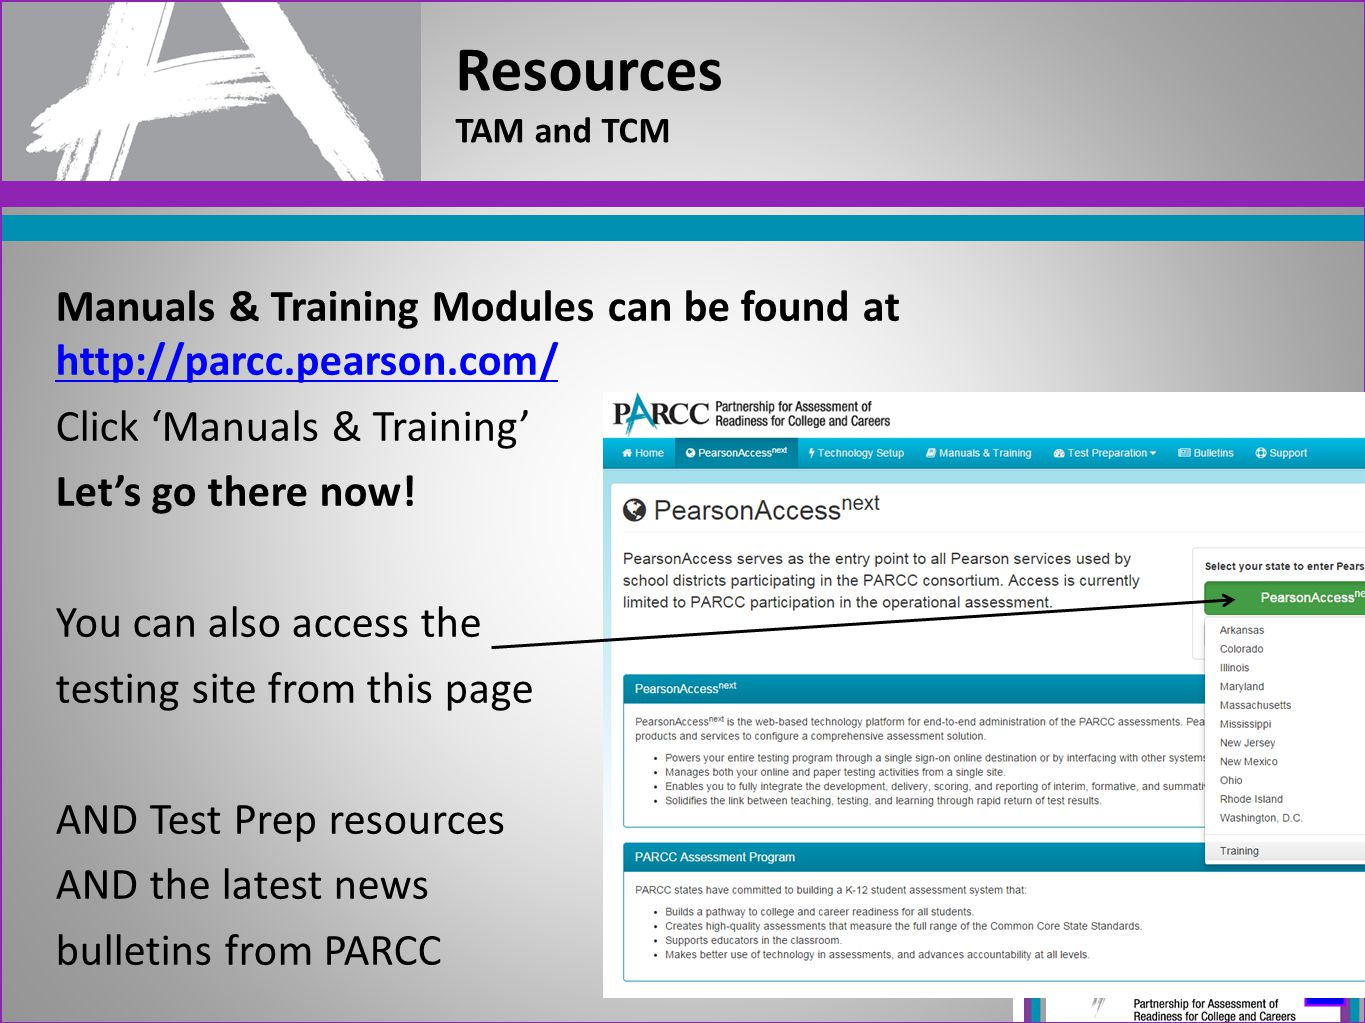 Resources TAM and TCM Manuals & Training Modules can be found at http://parcc.pearson.com/ Click 'Manuals & Training'